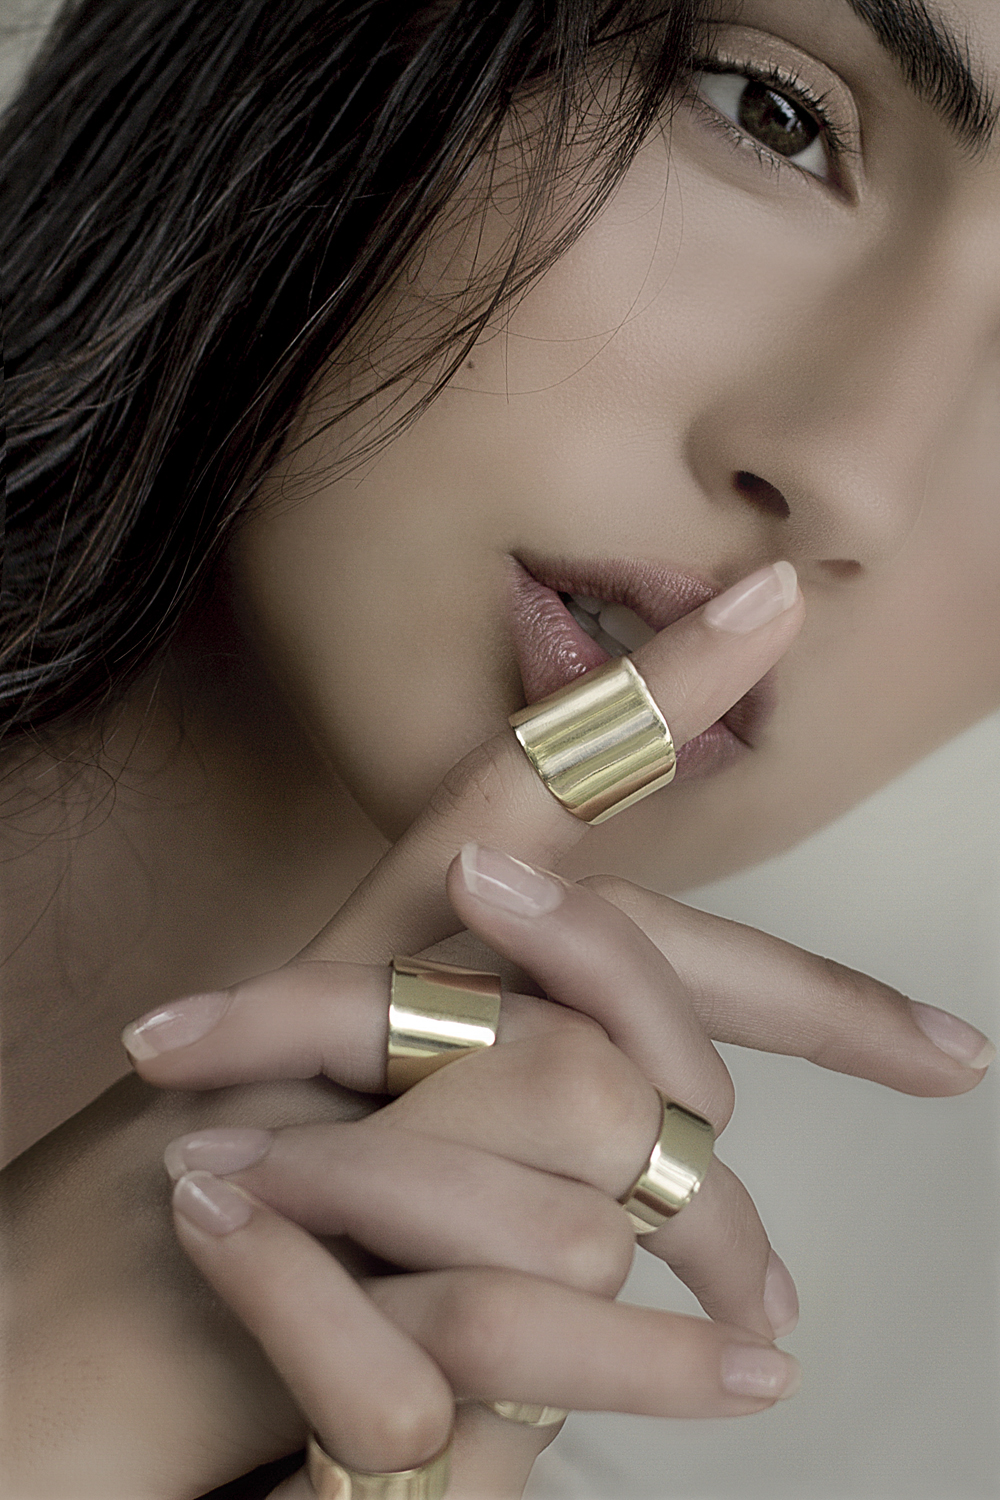 beauty shoot with golden rings by Donatella Parisini